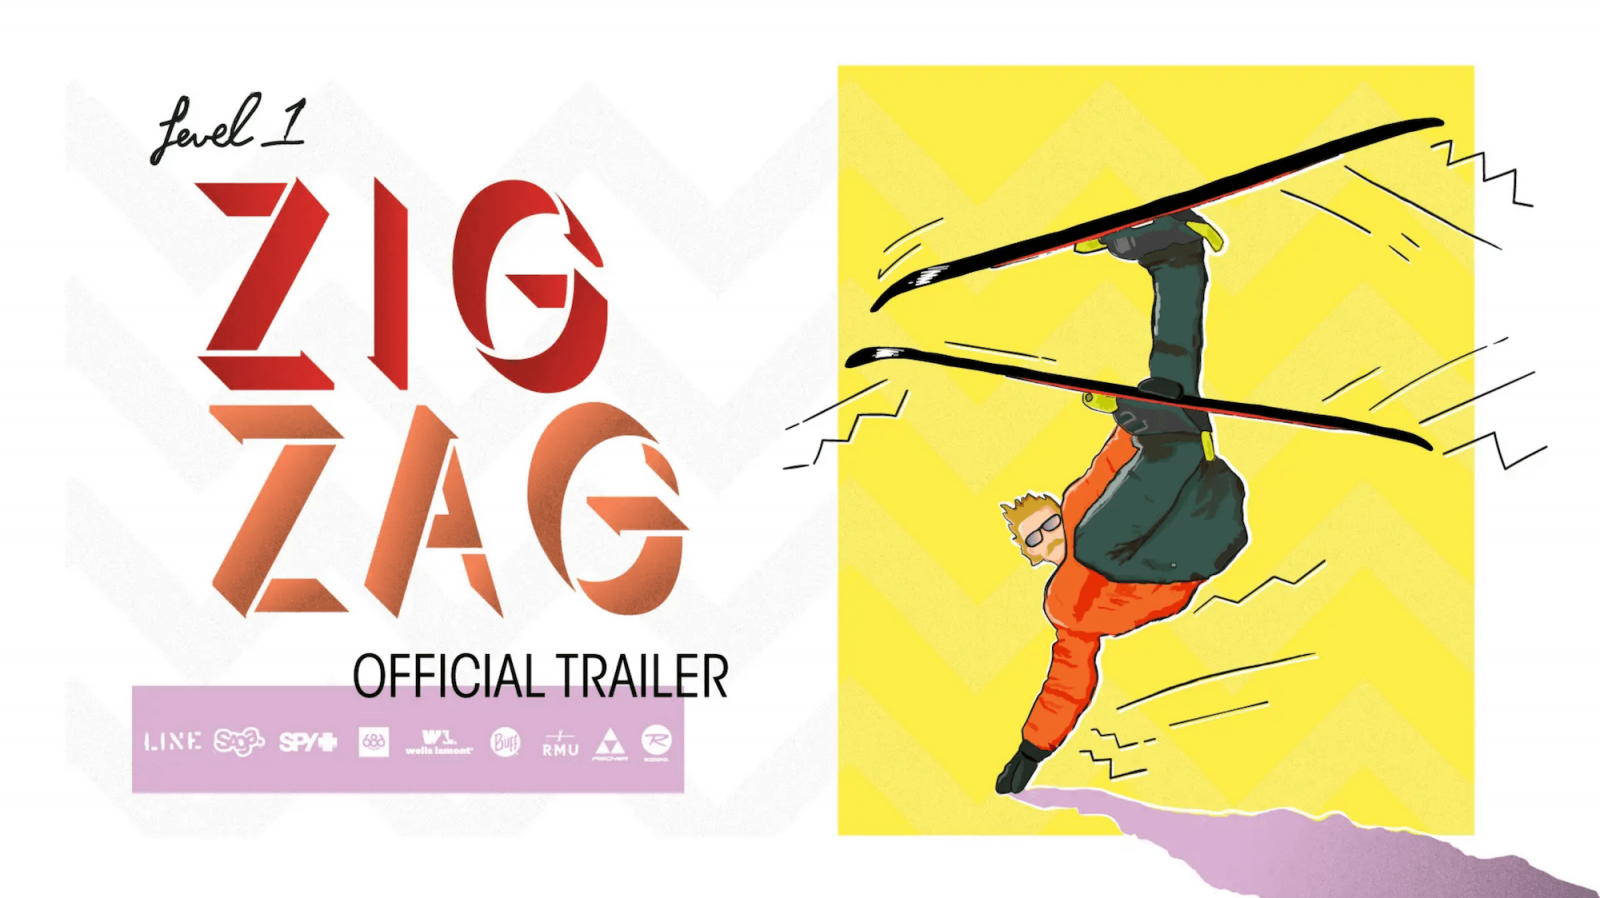 'Zig Zag' trailer is Live!